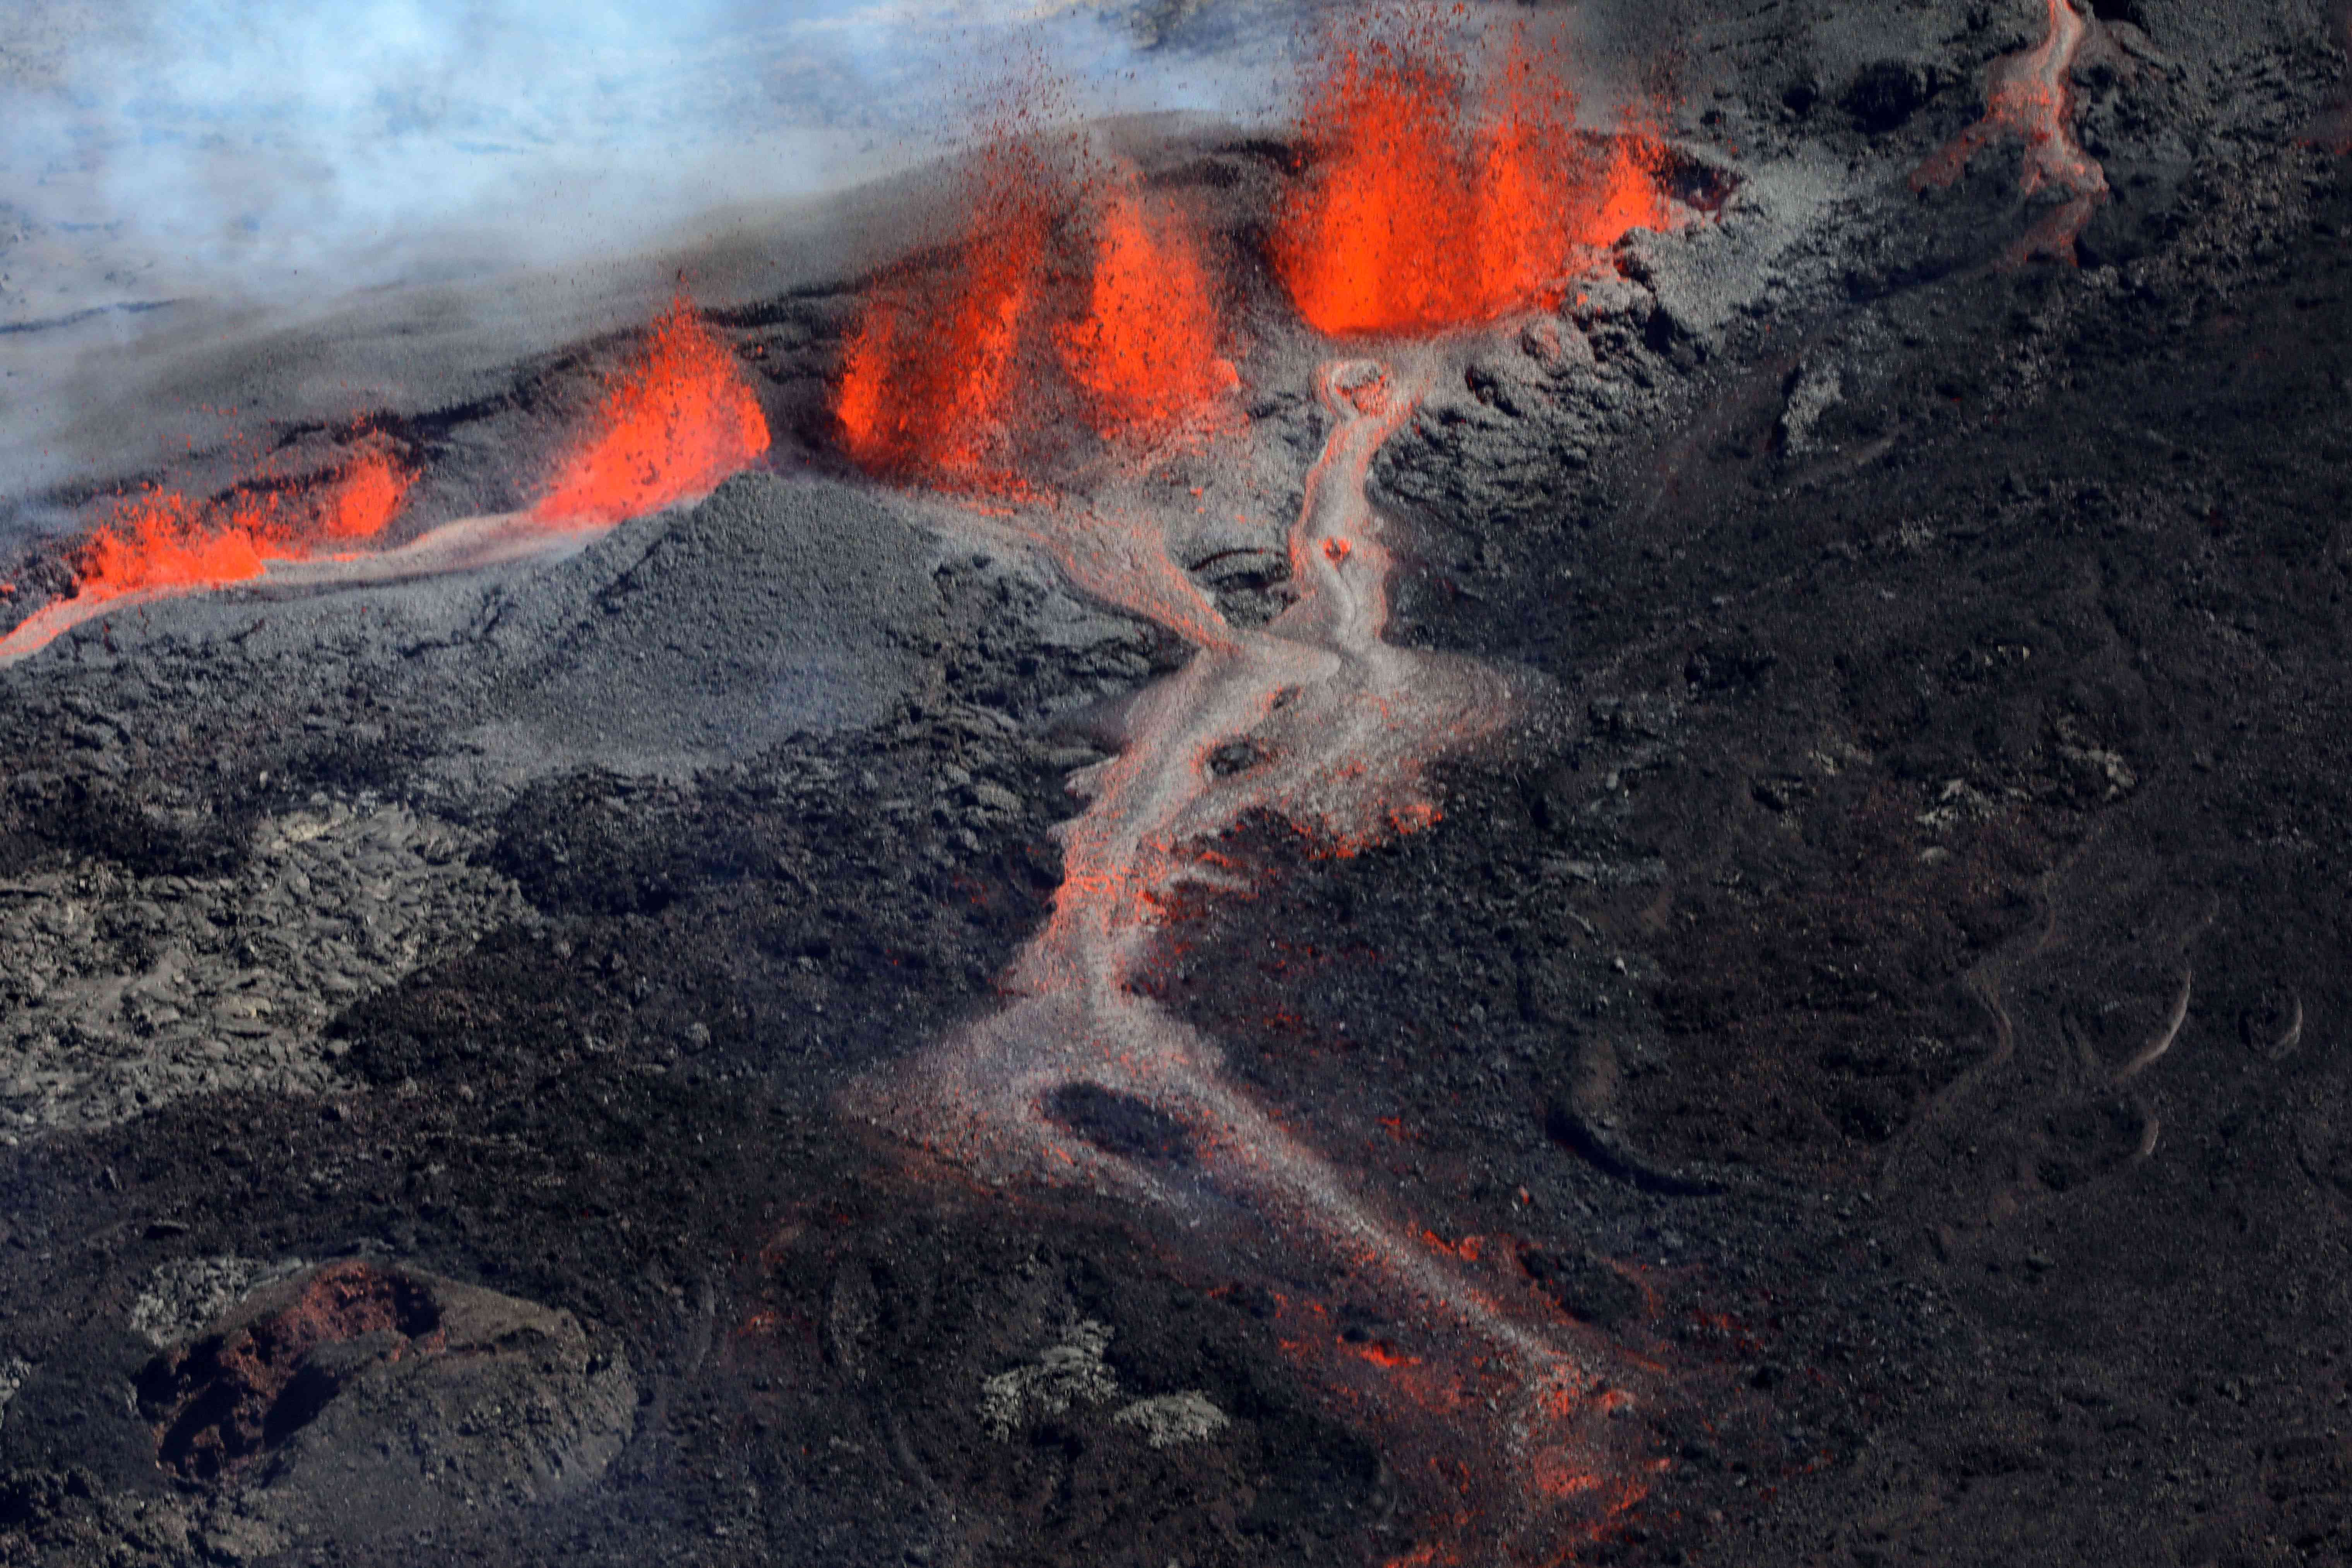 Lava erupts from the Rivals crater flowing down the south face of the Piton de la Fournaise.